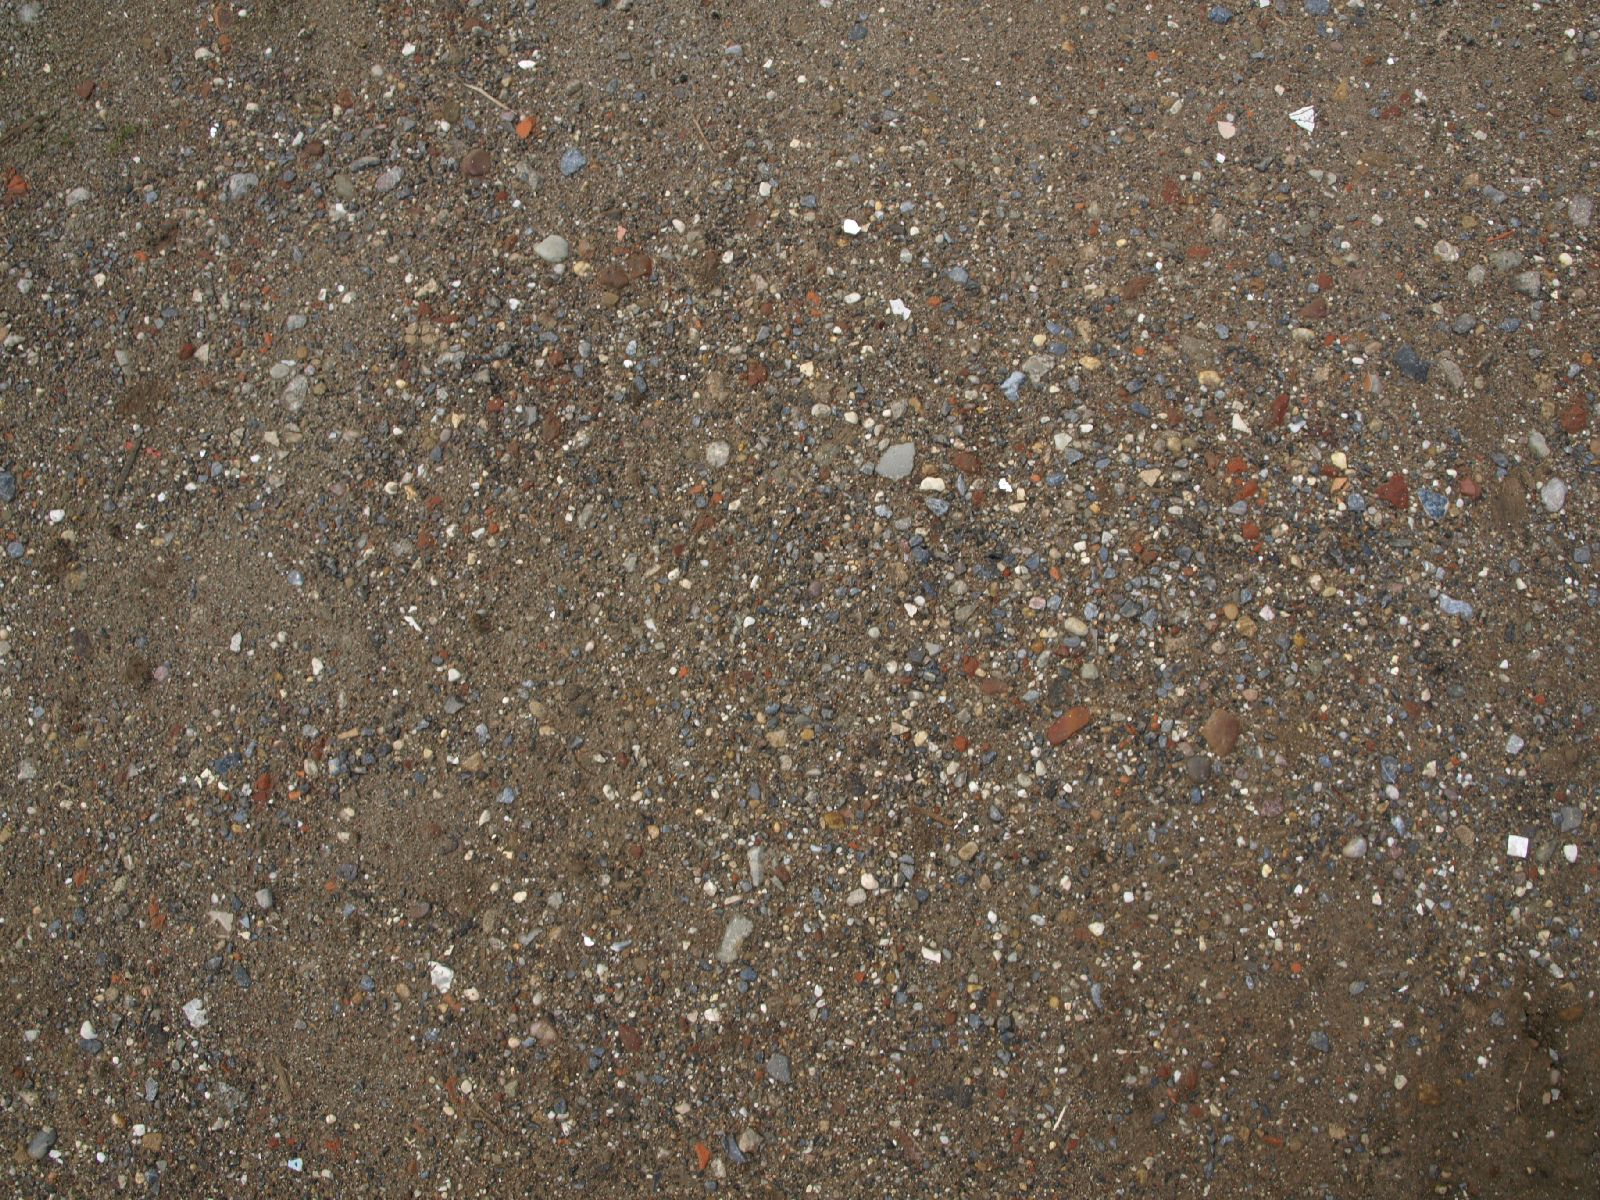 Ground-Nature_Texture_A_P5022091